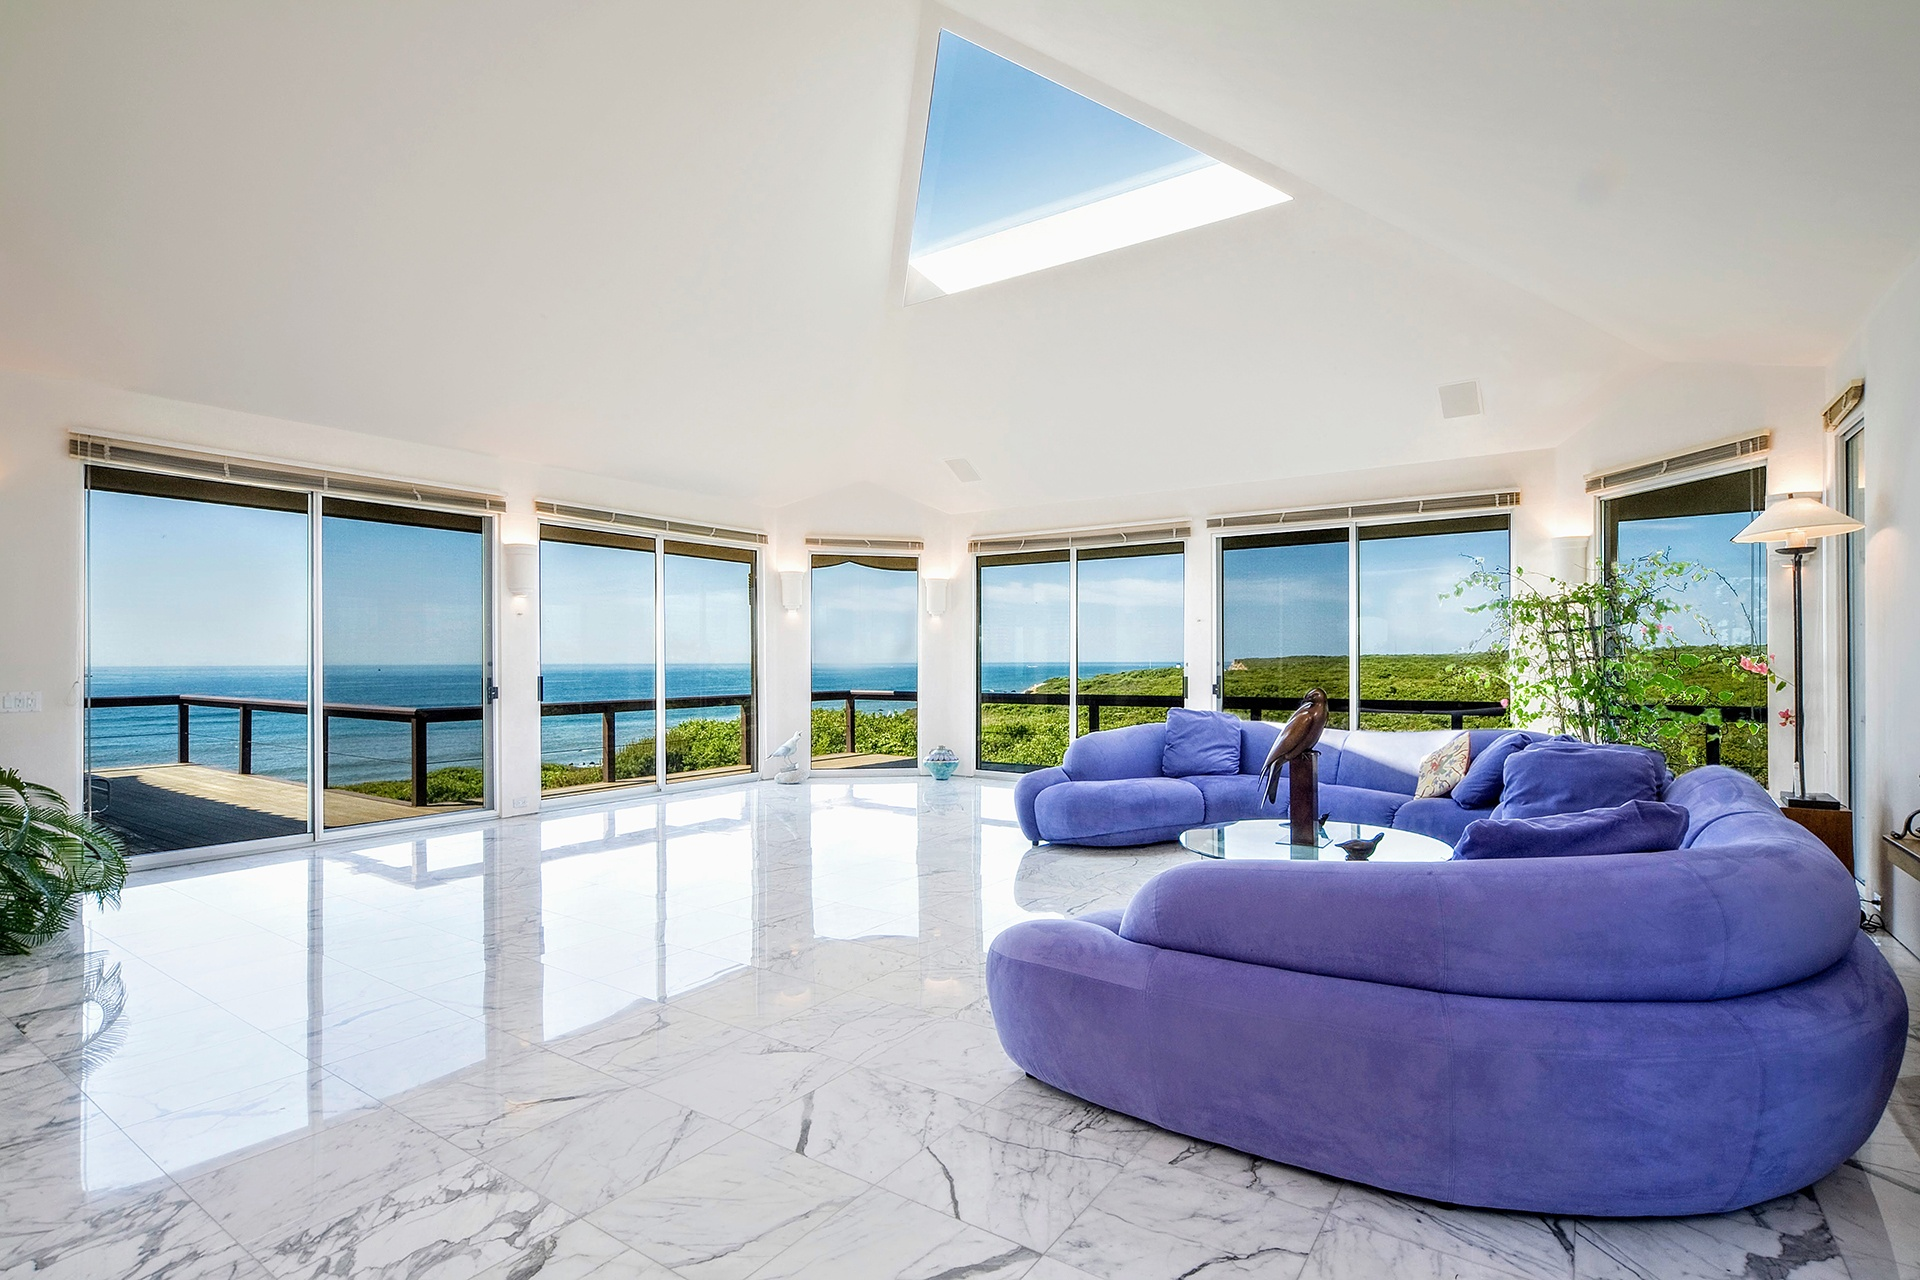 The white-marble living room is a striking contrast to the cobalt-blue sea and emerald-green bluffs.